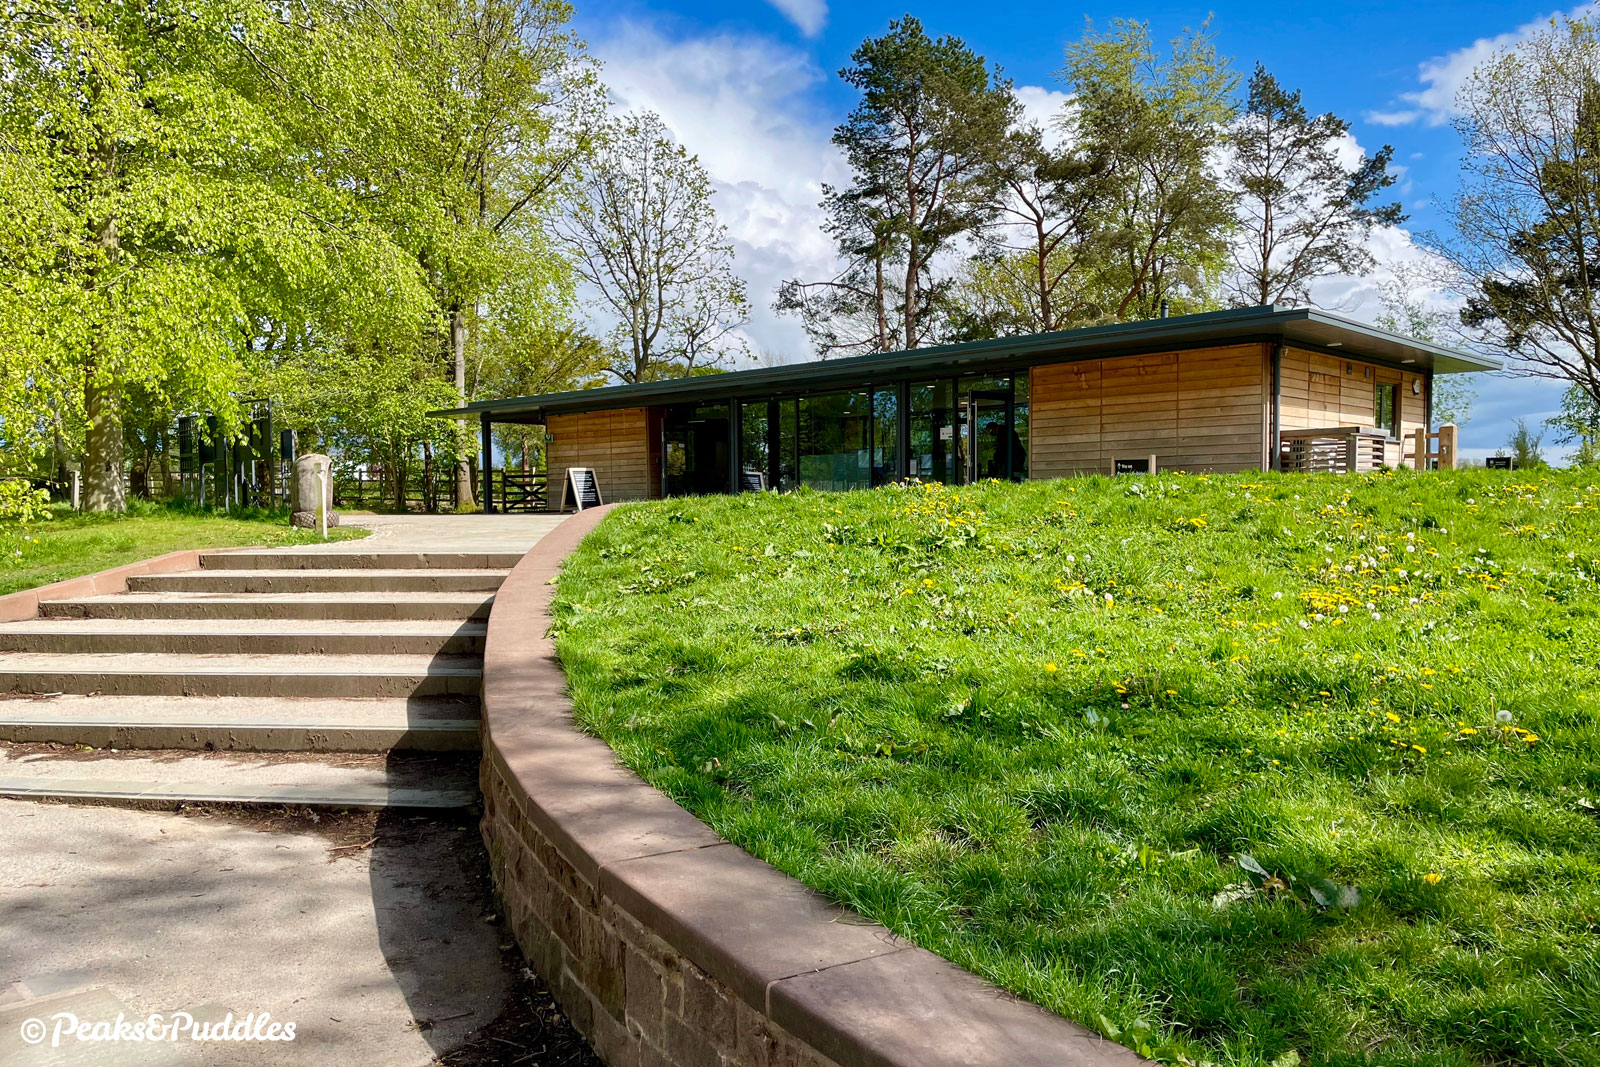 The National Trust recently invested in a new visitor welcome building and expanded car park at Quarry Bank, perhaps in anticipation of new visitors arriving along the A555. Buck the trend and arrive by bike!